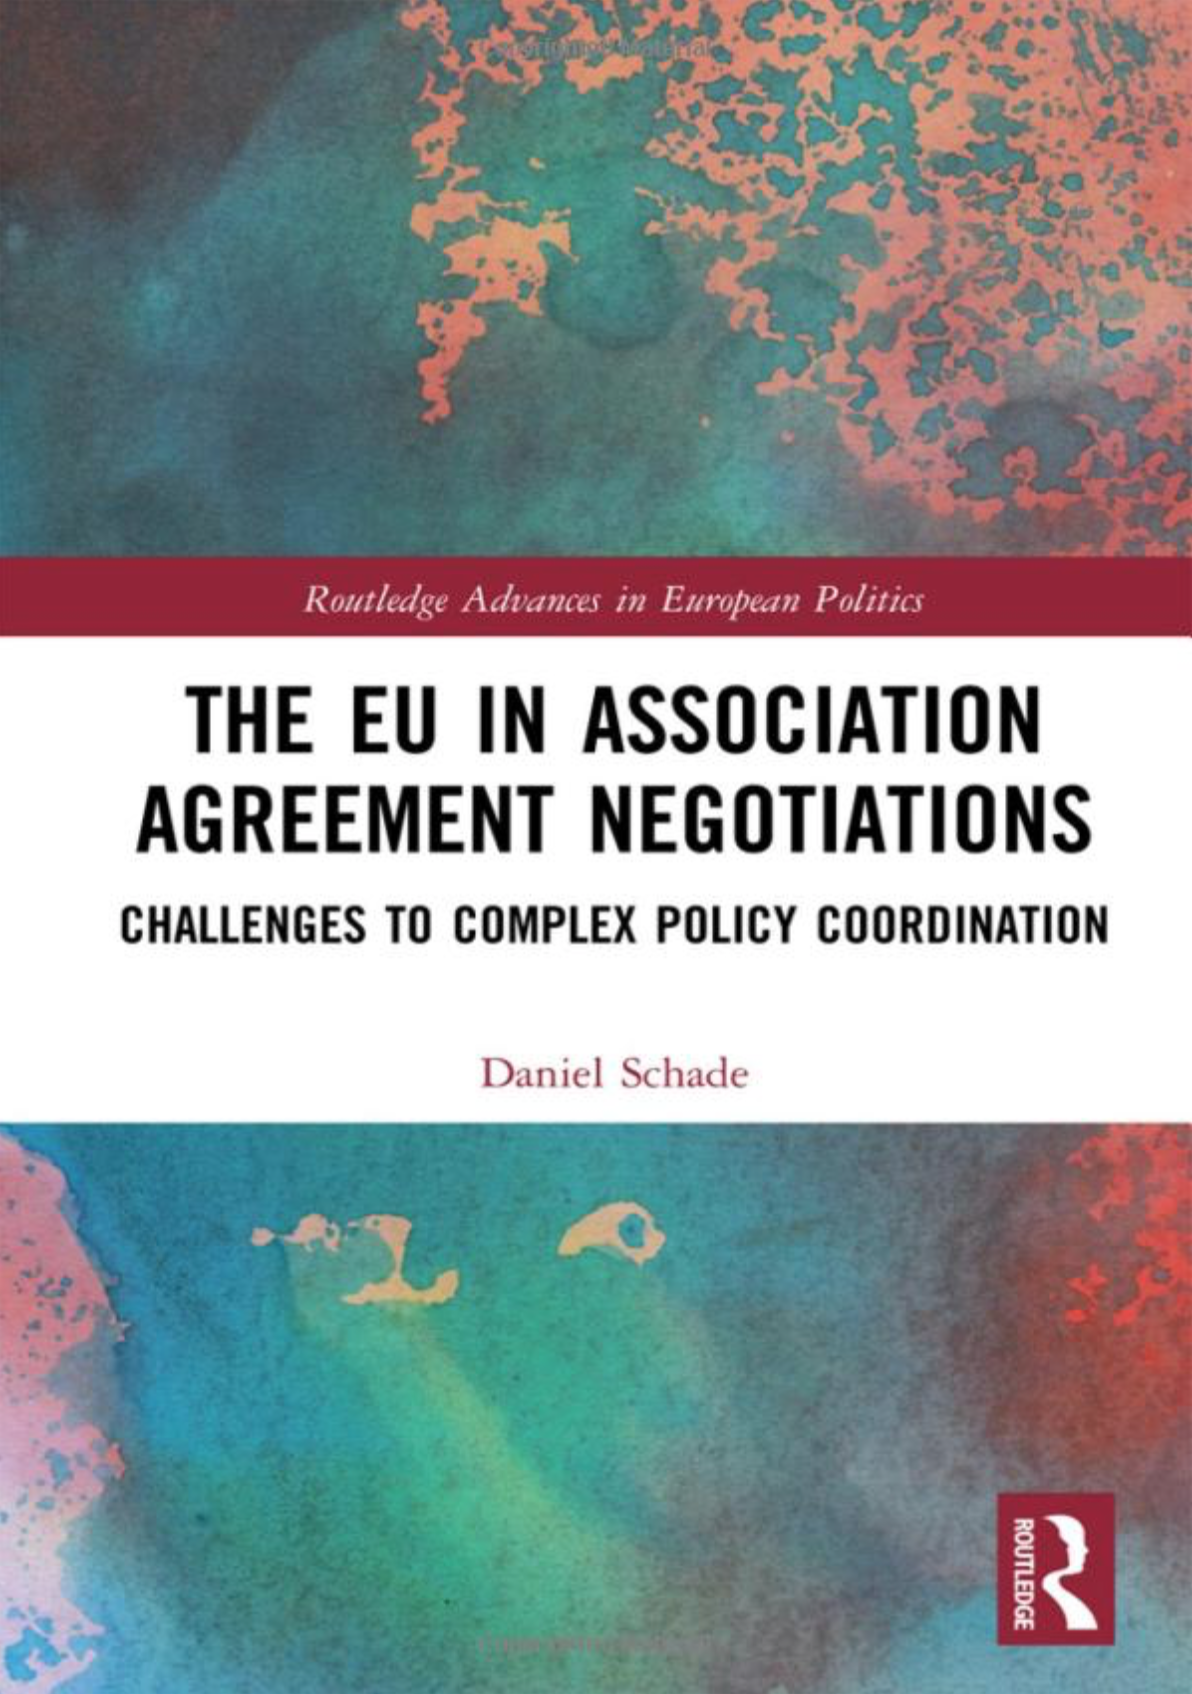 The EU in Association Agreement Negotiations cover